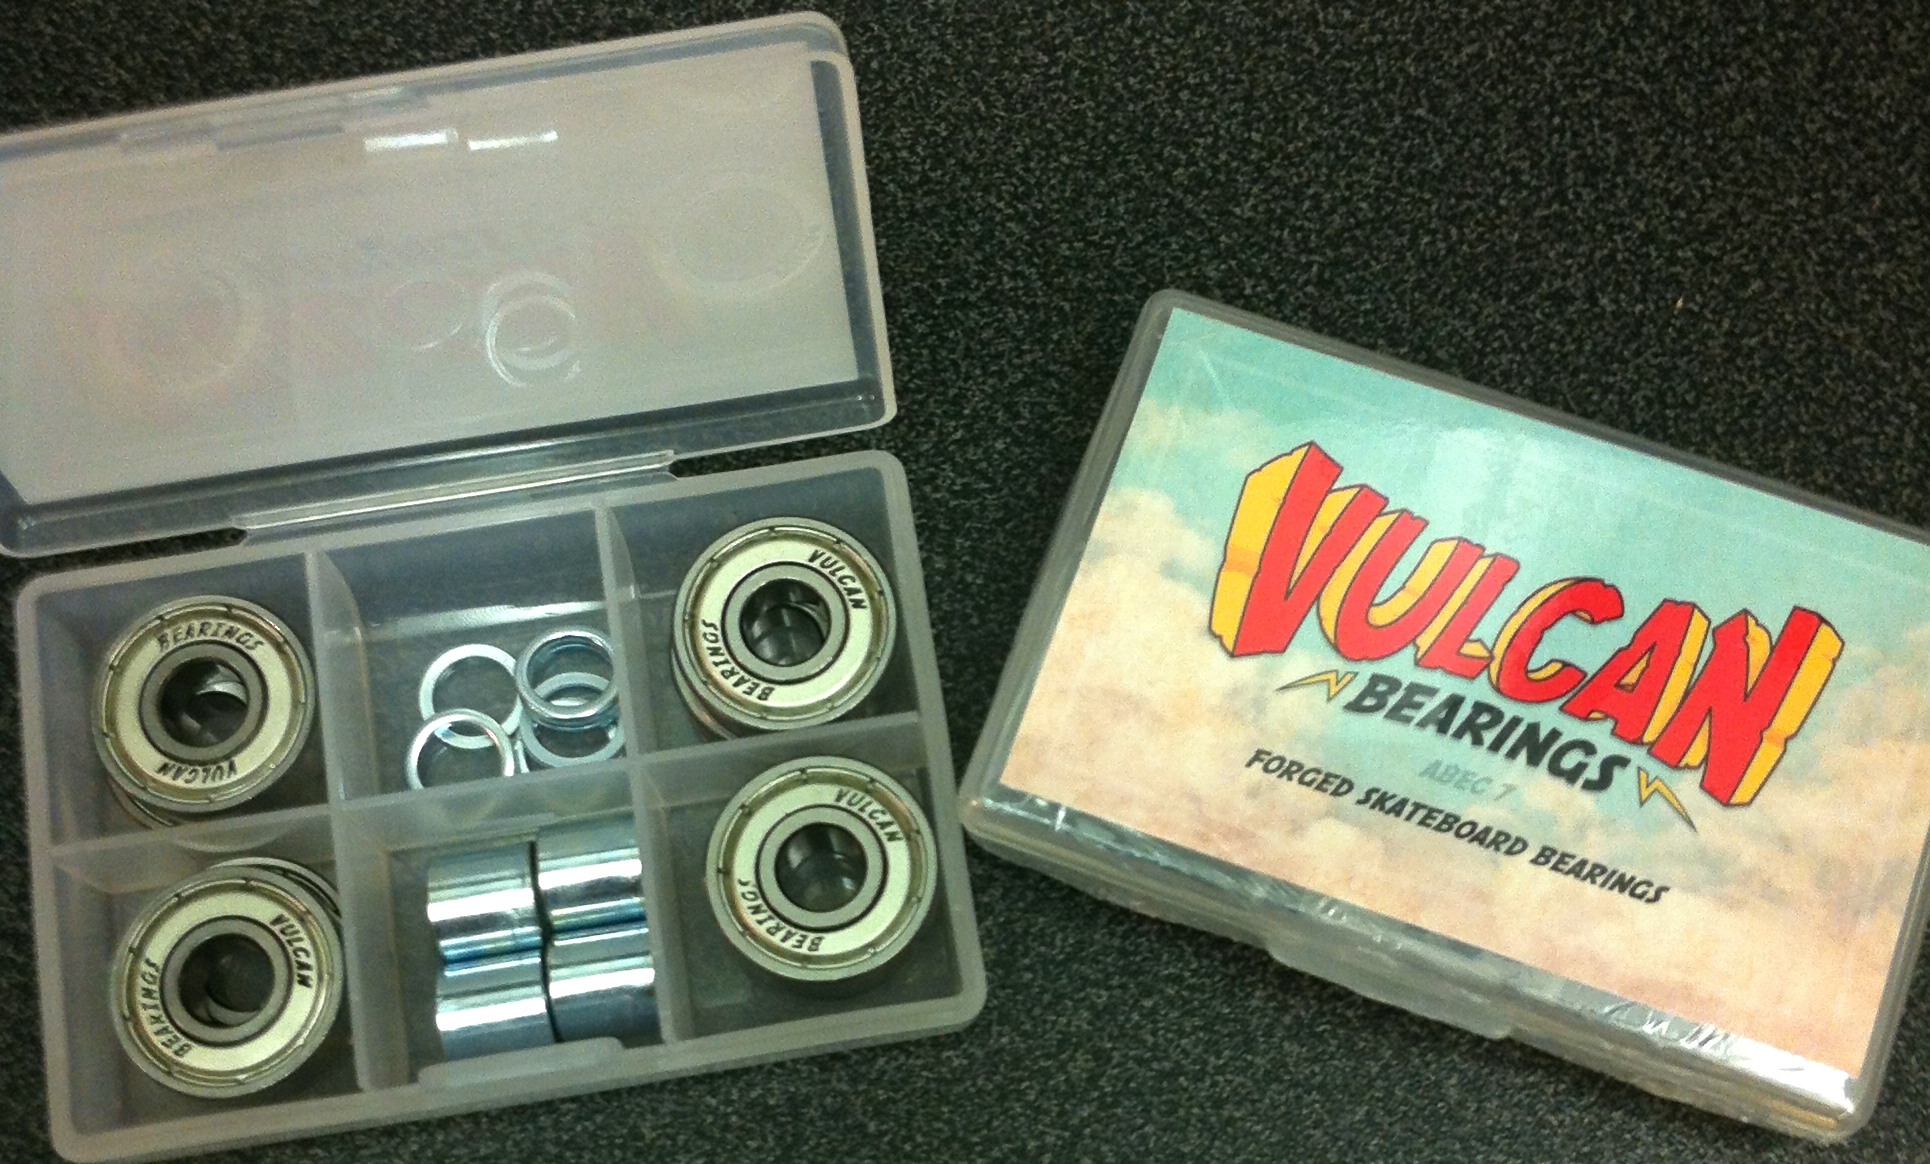 Vulcan Bearings - Forged For Speed